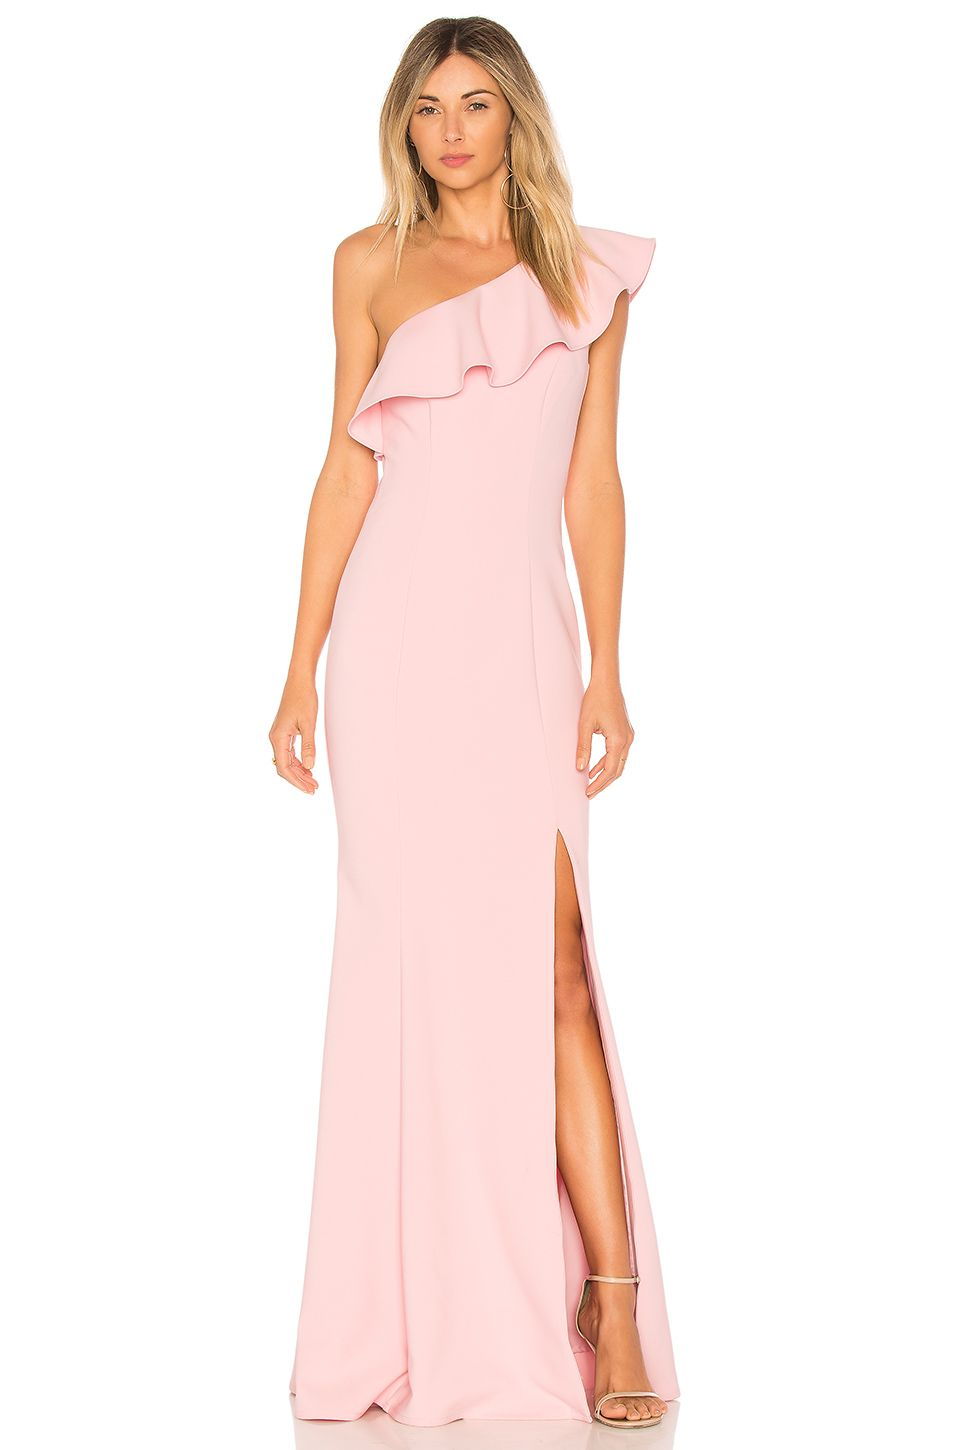 LIKELY KANE GOWN.  likely  cloth    2db3ea4f597f